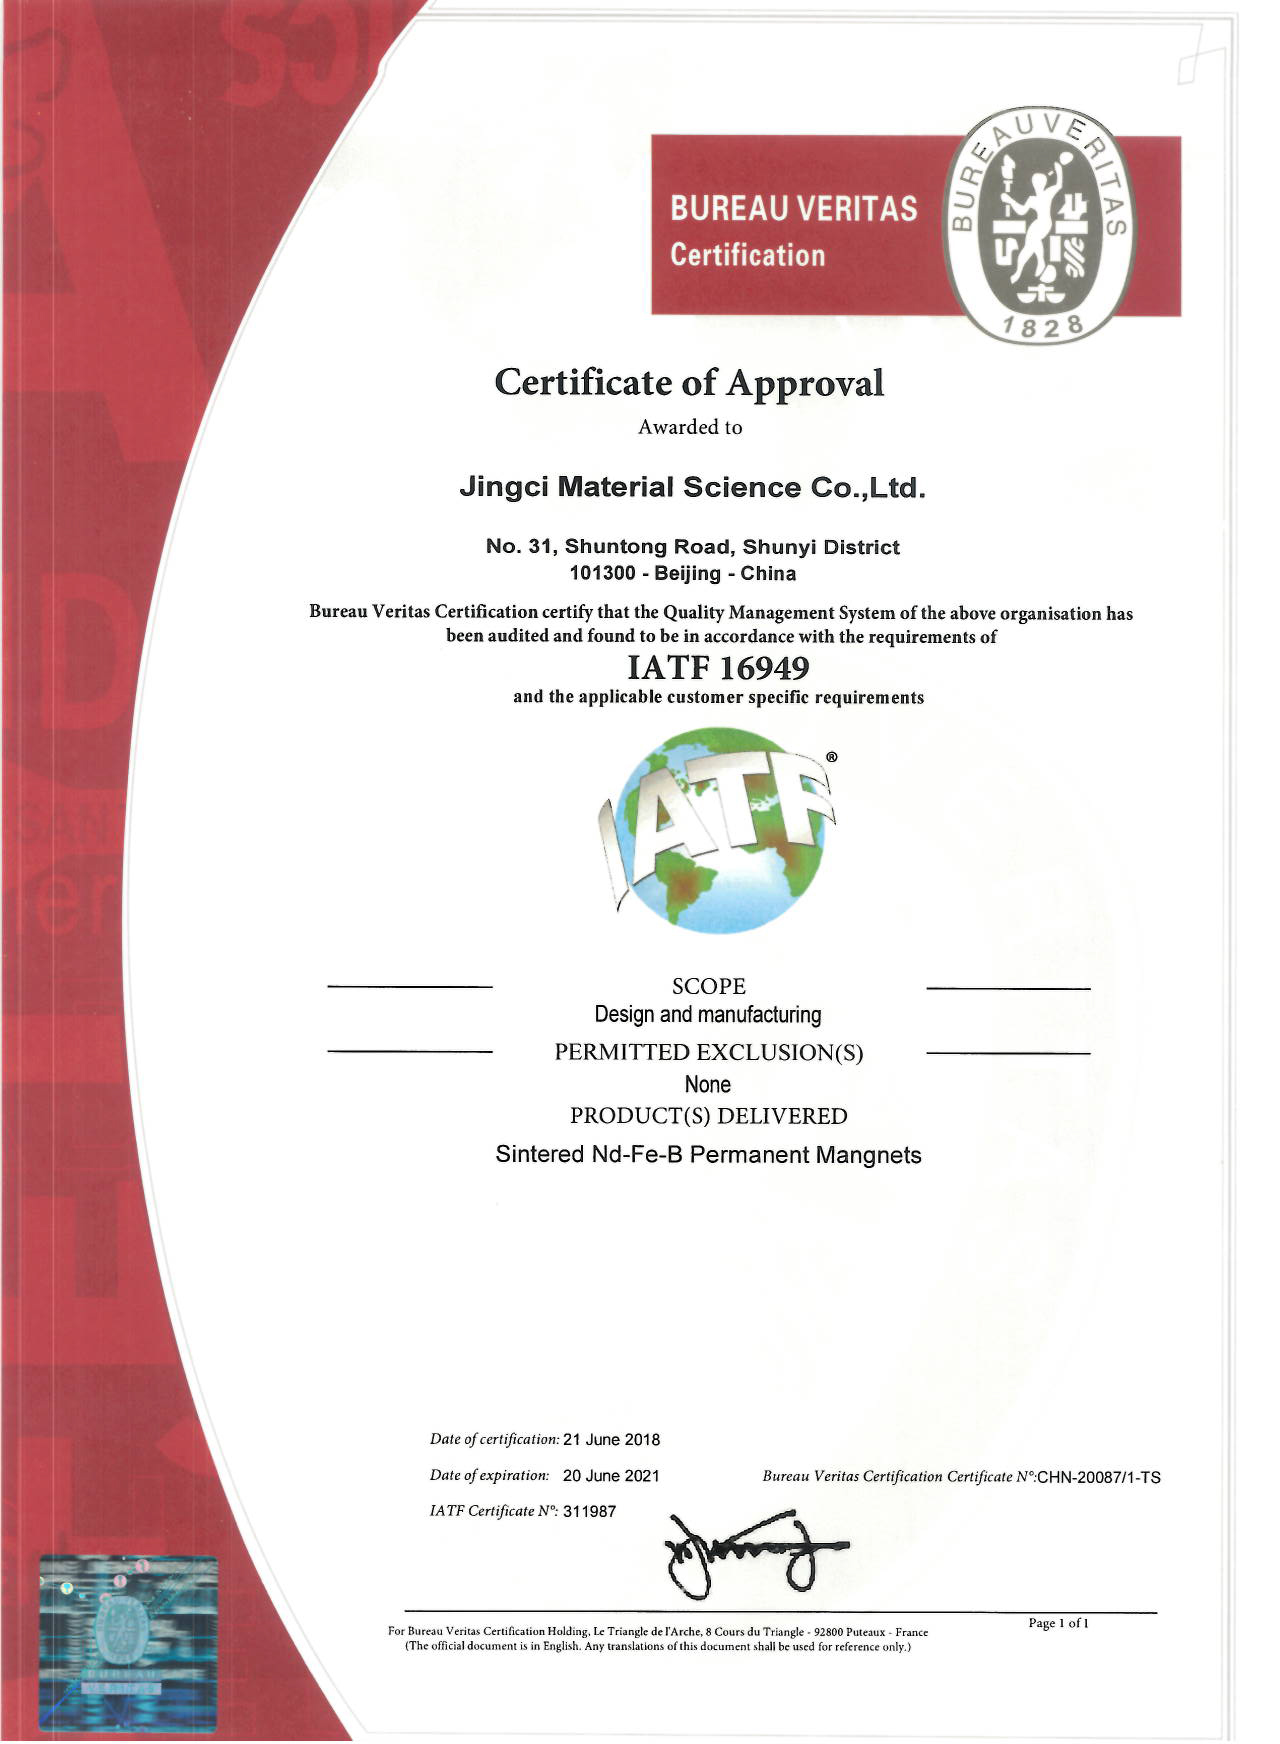 About BJMT ISO-TS 16949